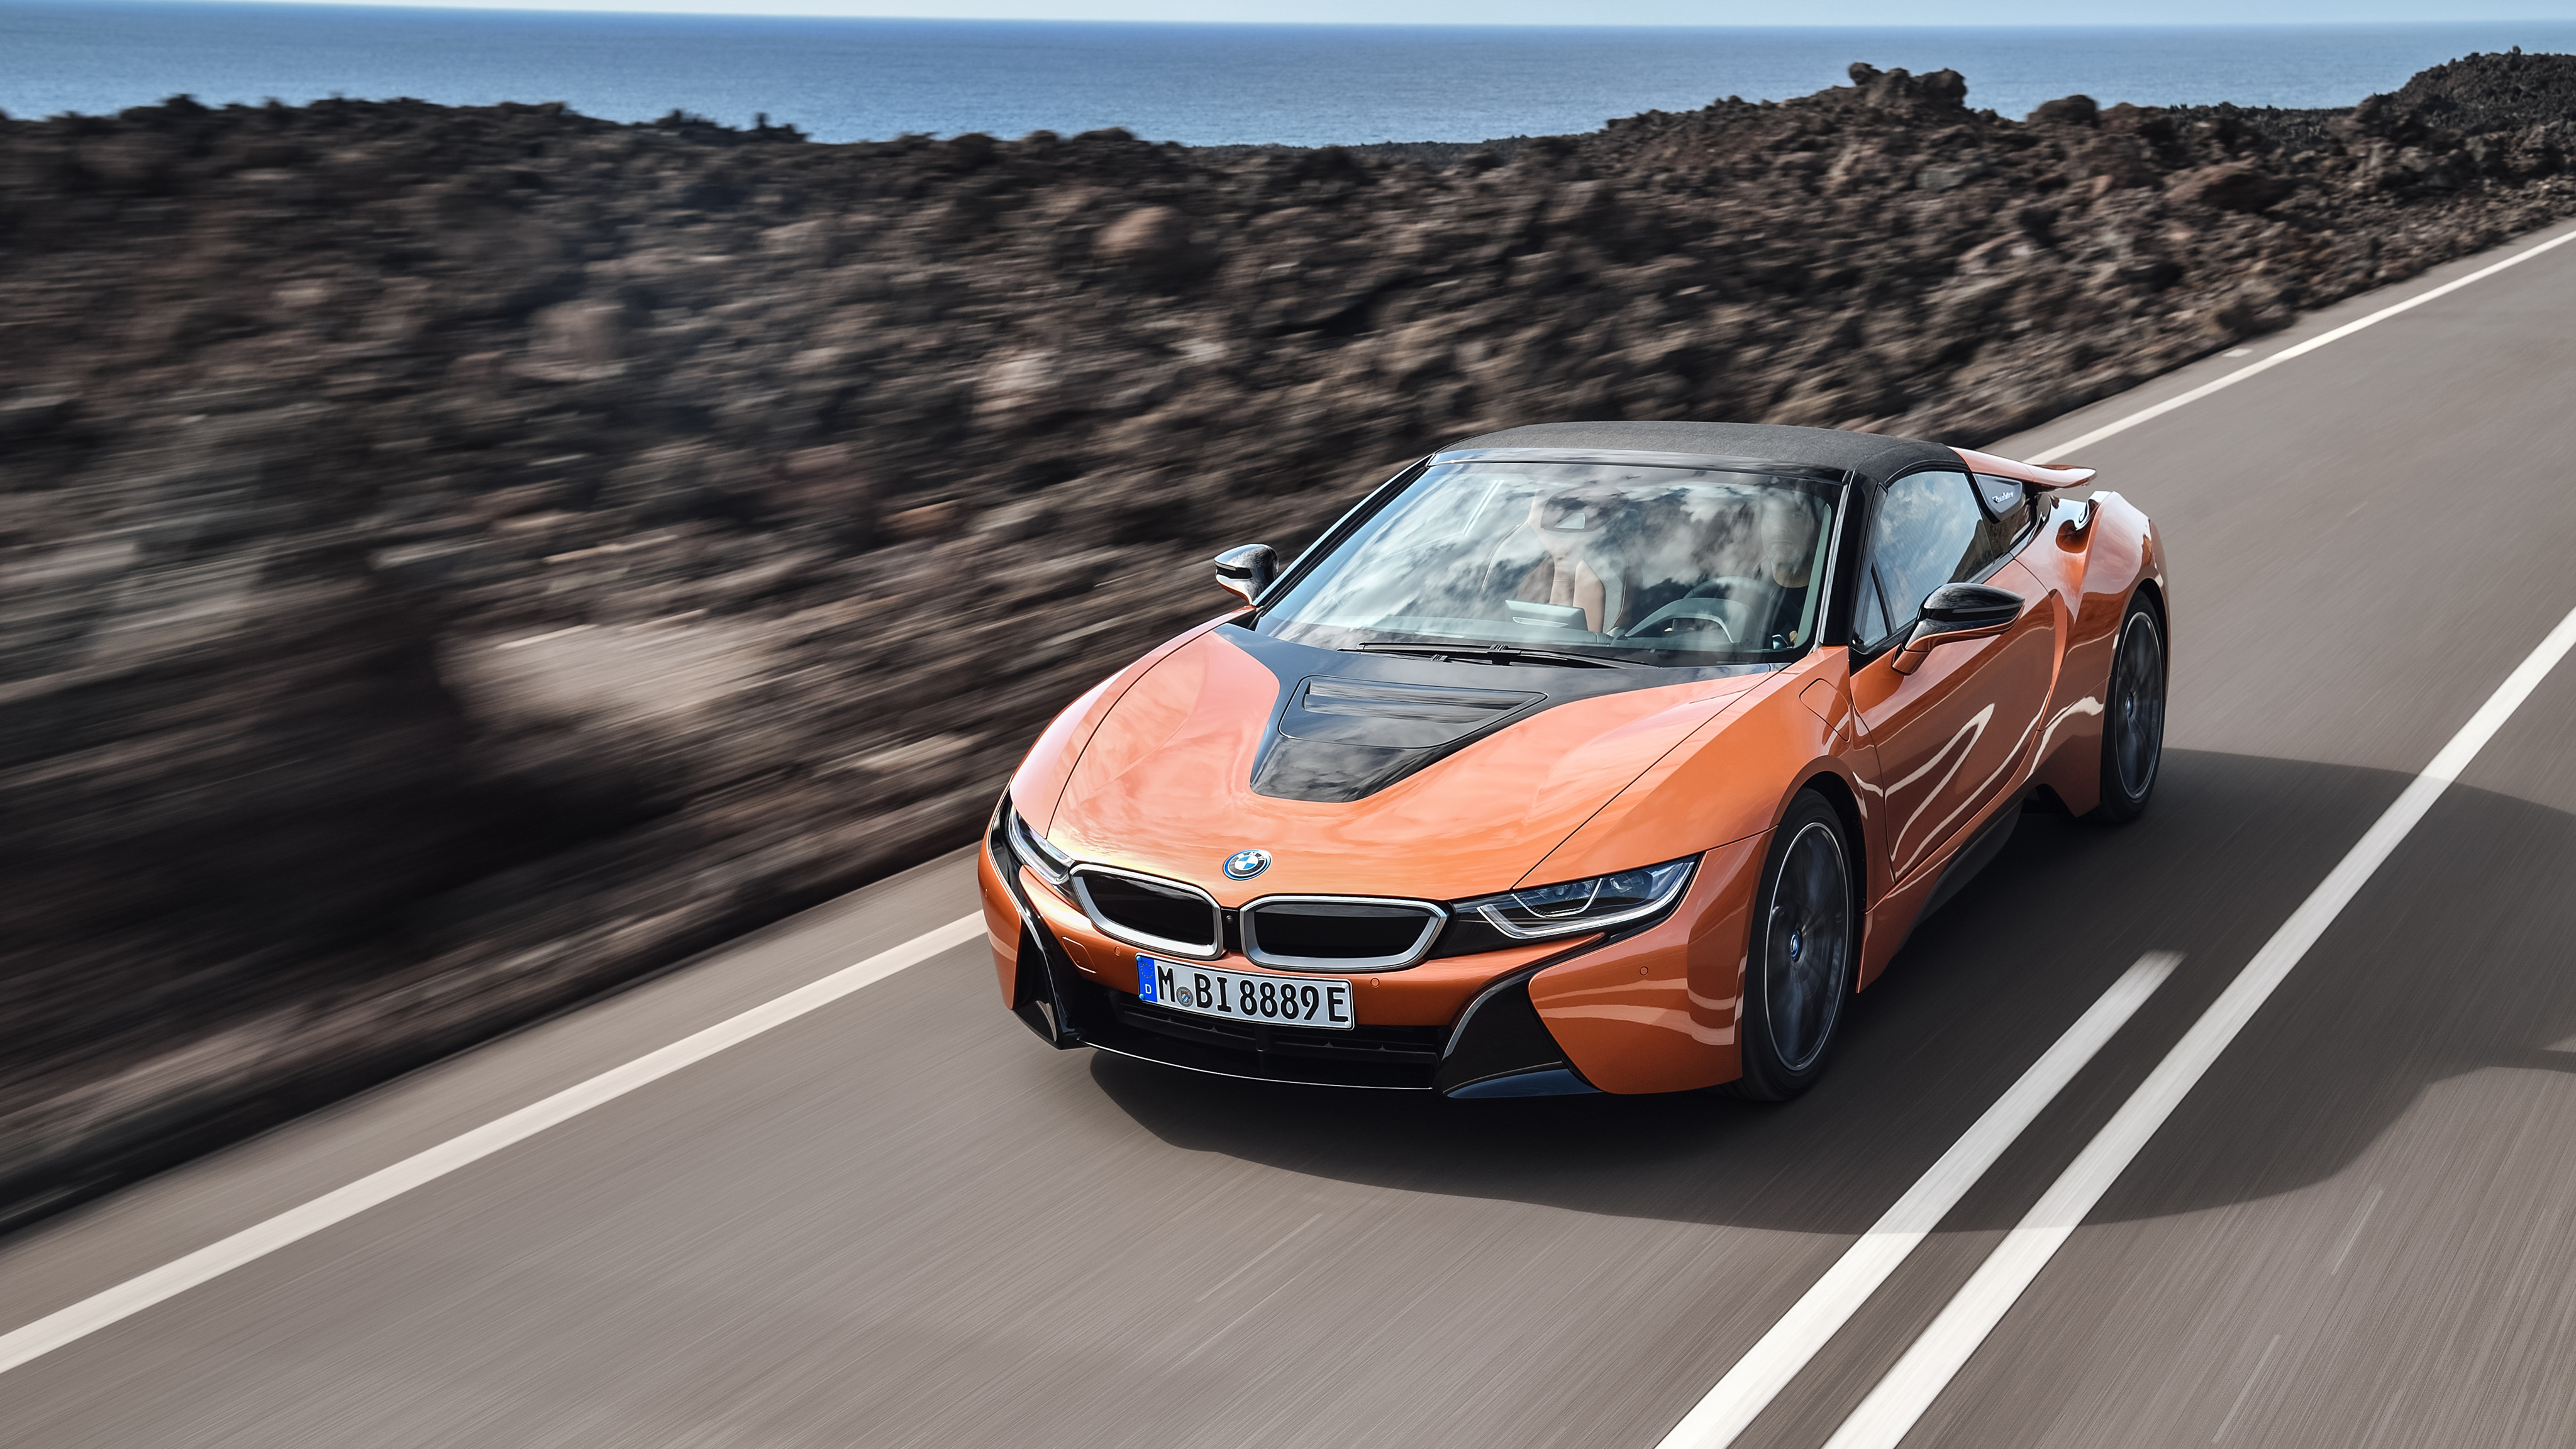 2018 bmw i8 roadster 4k wallpaper | hd car wallpapers | id #9193